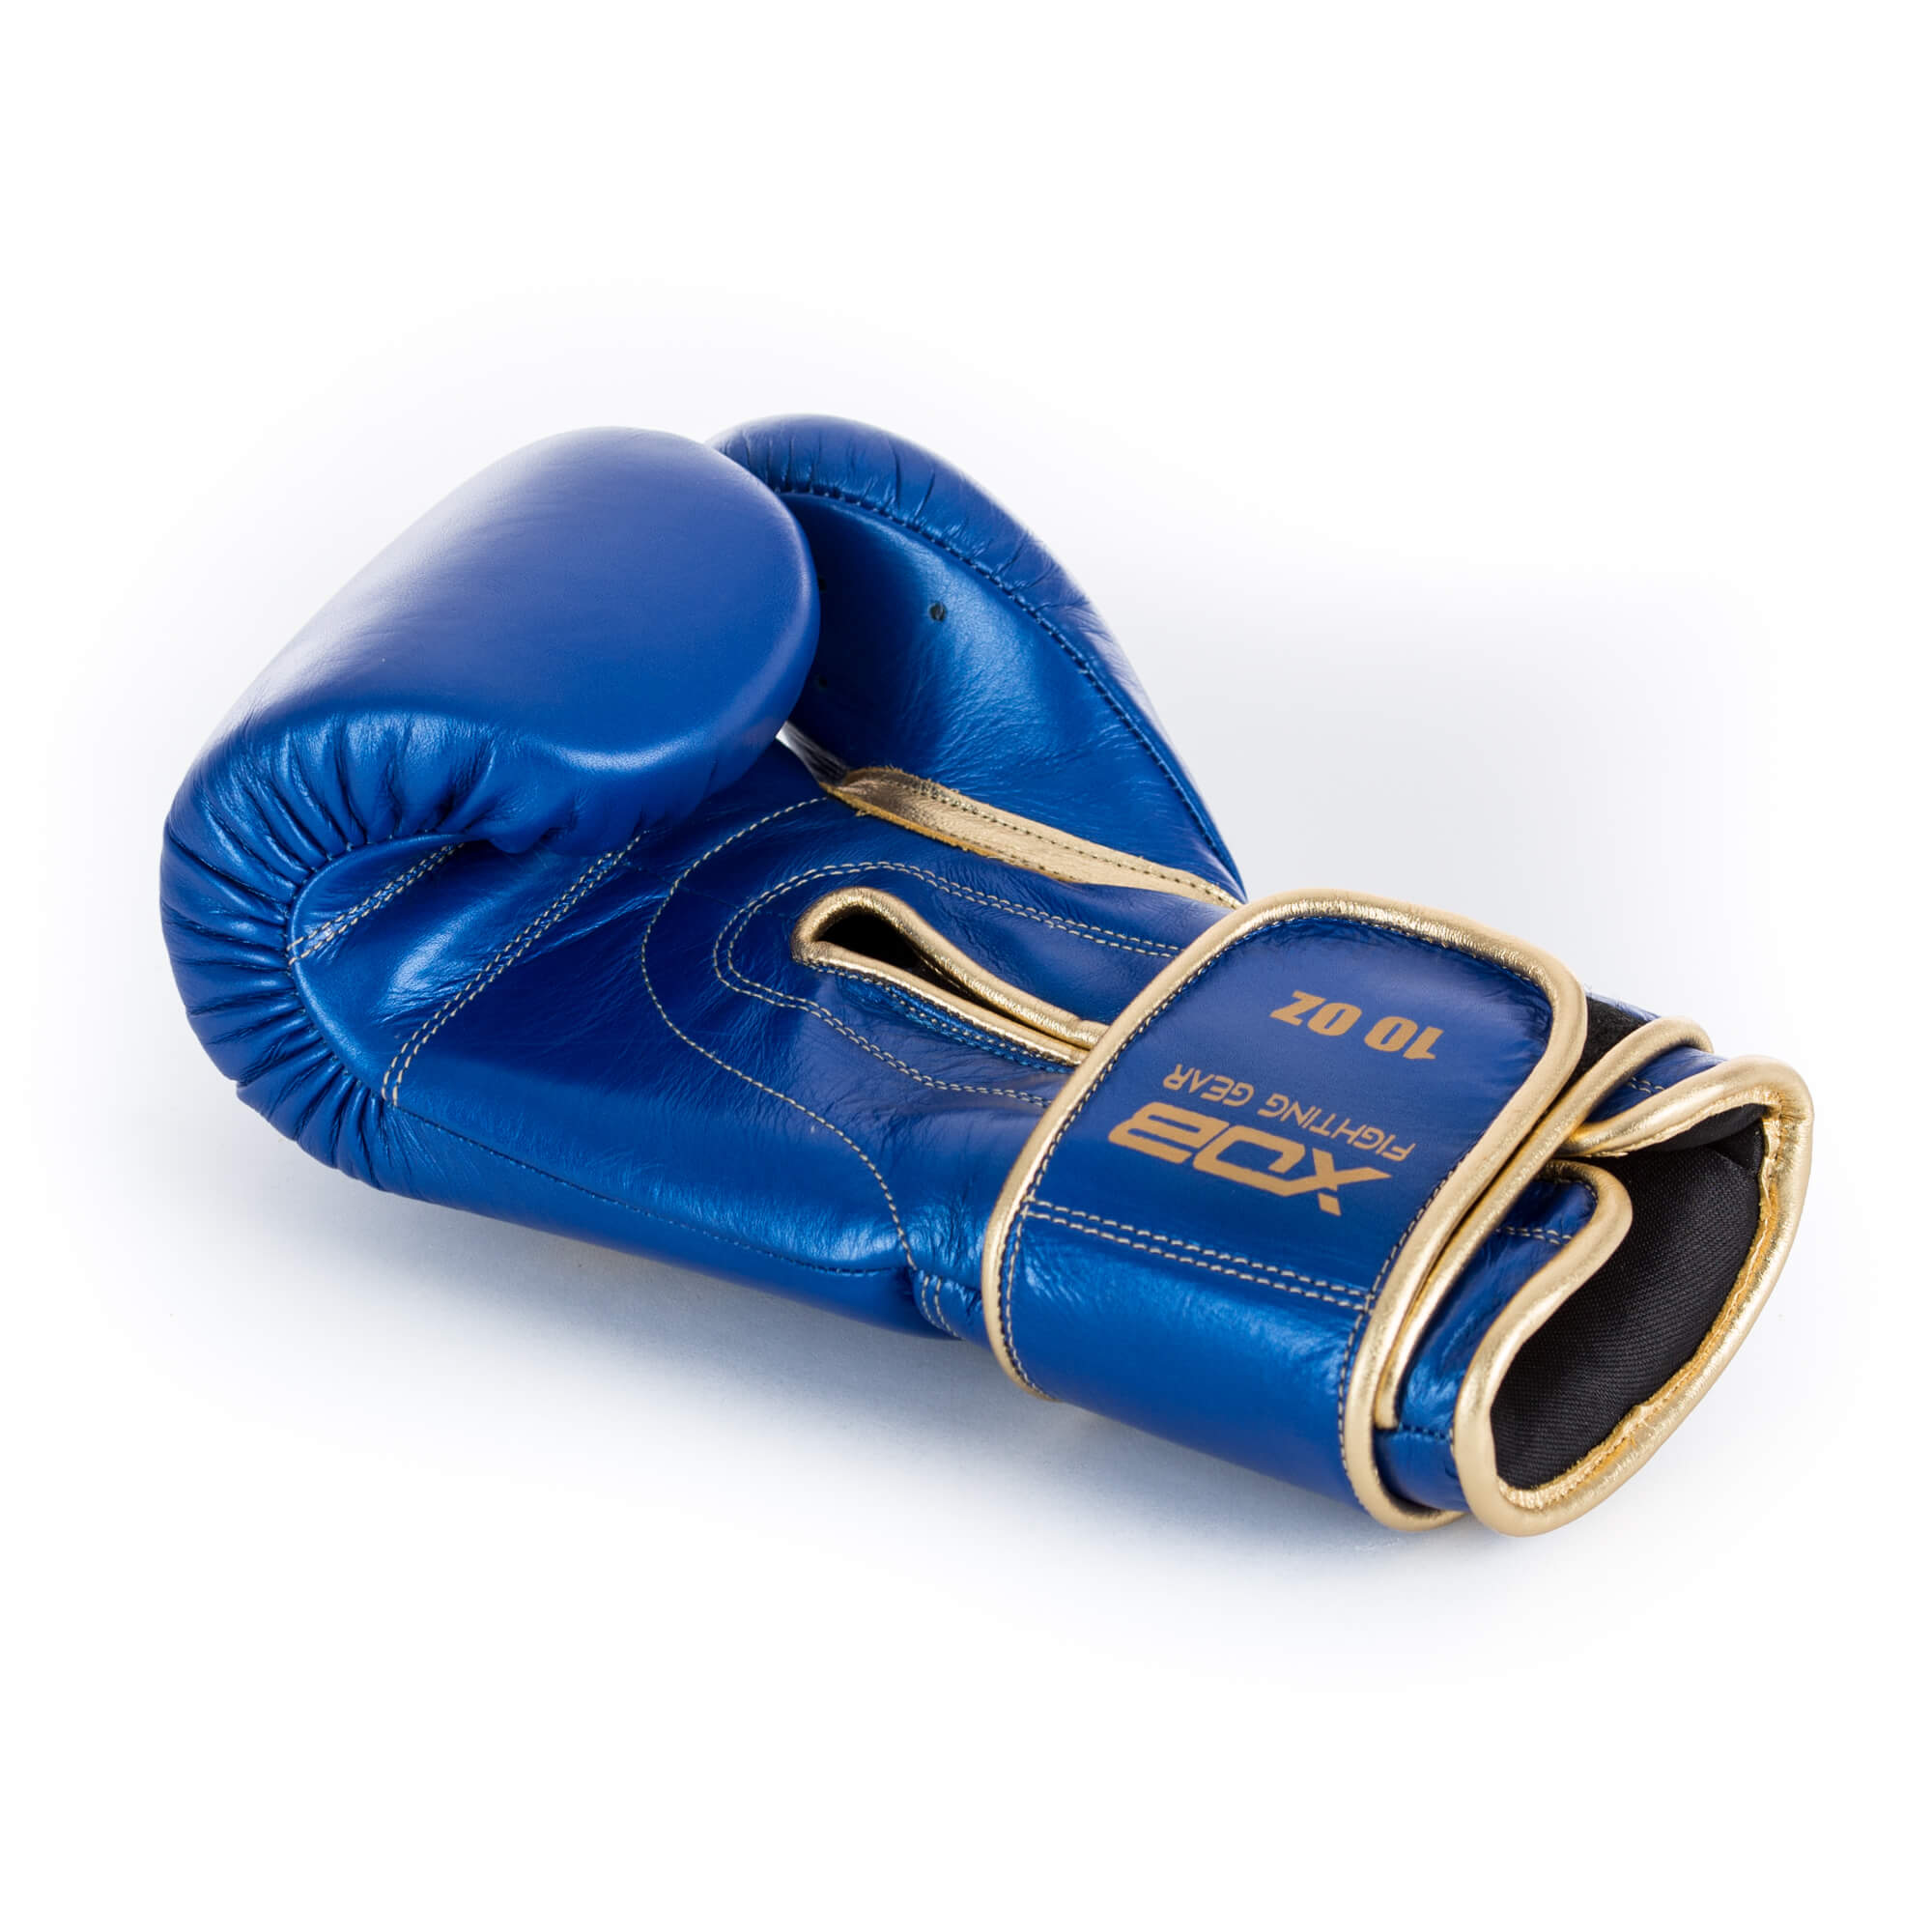 XOB Original Hook and Loop Boxing Gloves - Metallic Blue & Gold